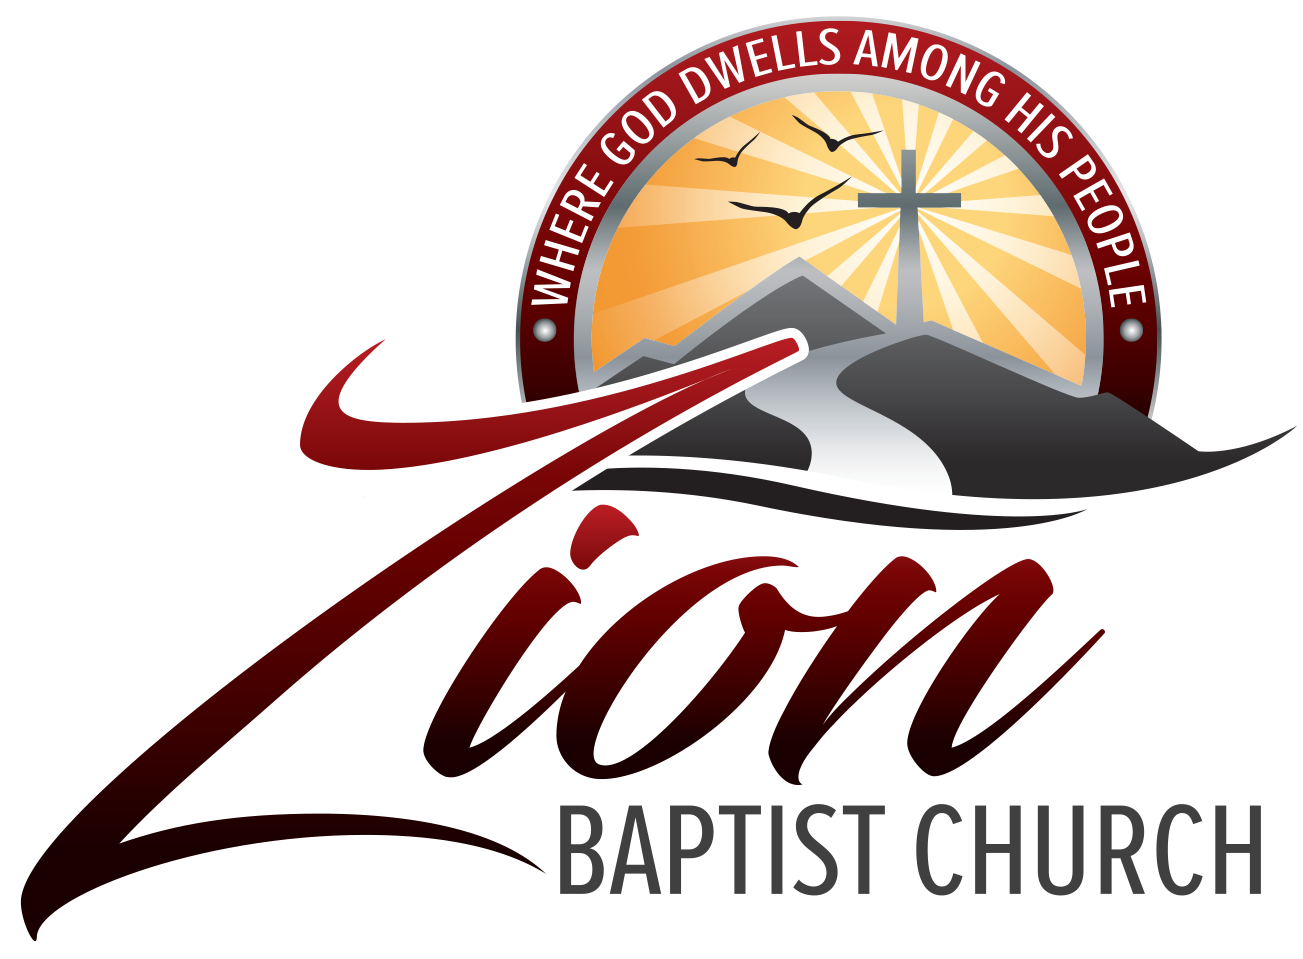 Zion Baptist Church -